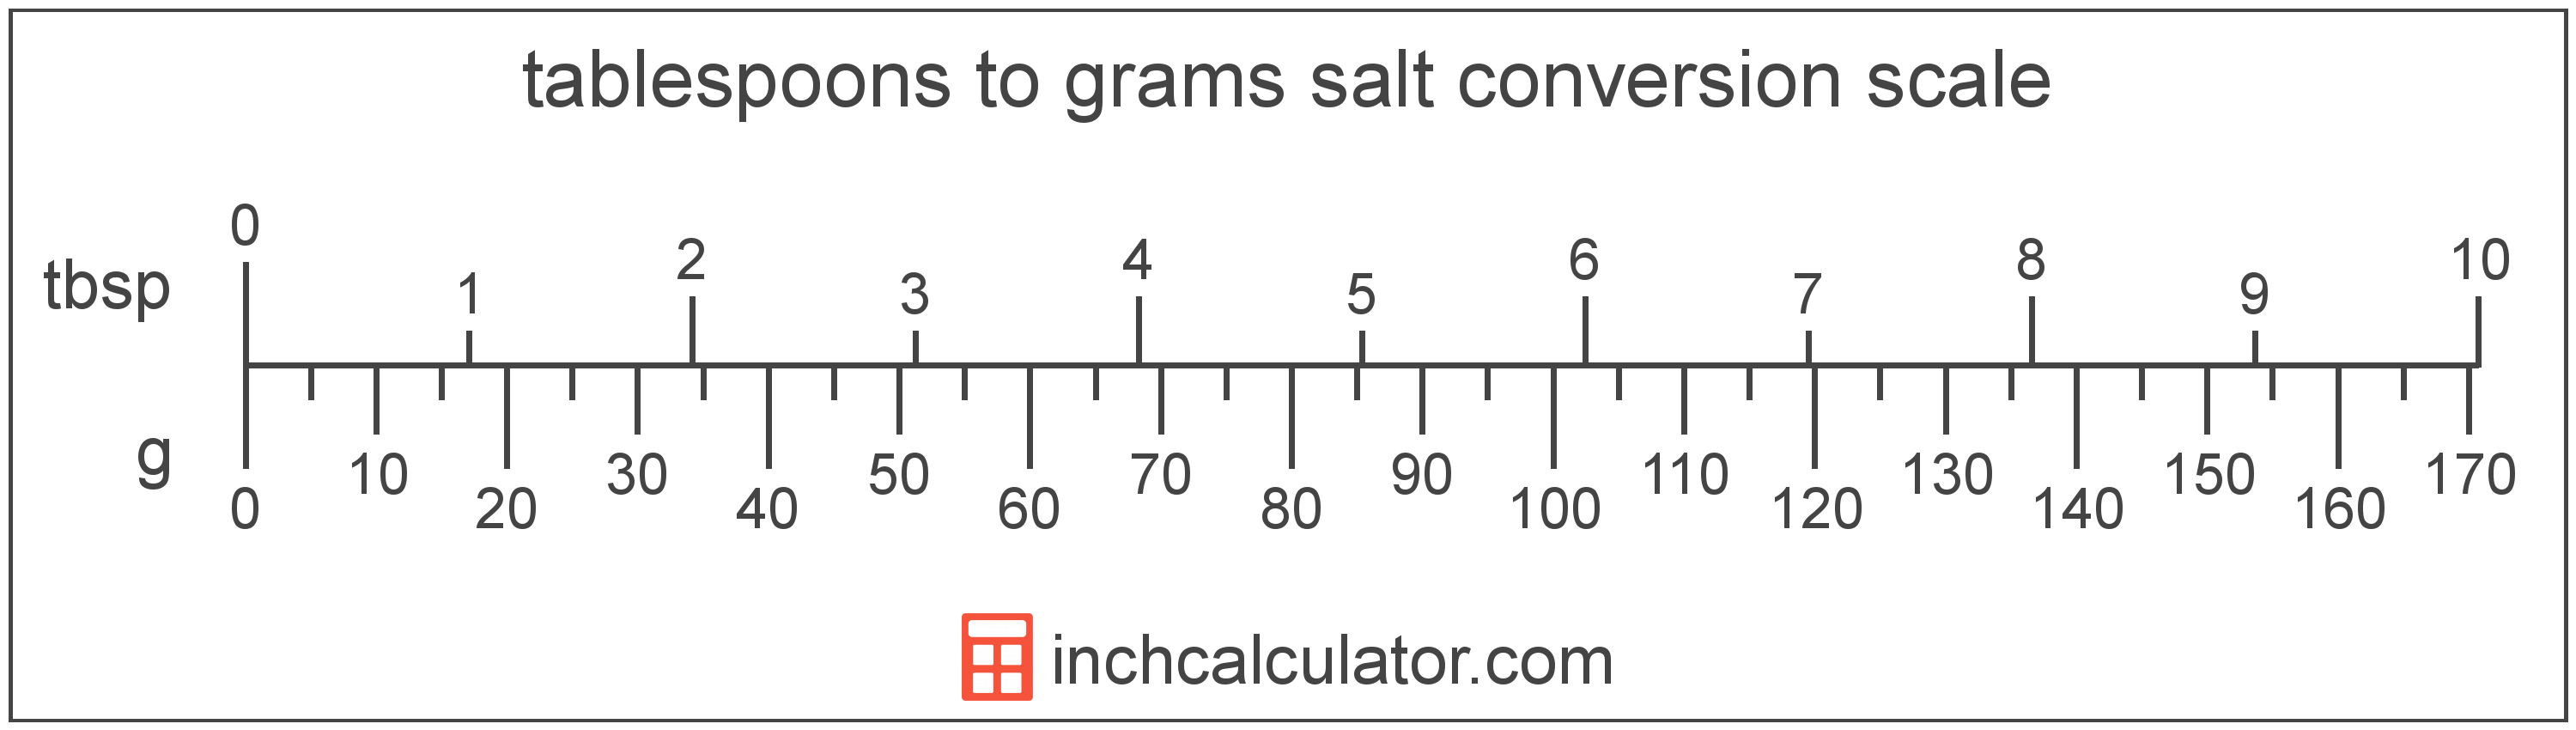 conversion scale showing grams and equivalent tablespoons salt volume values